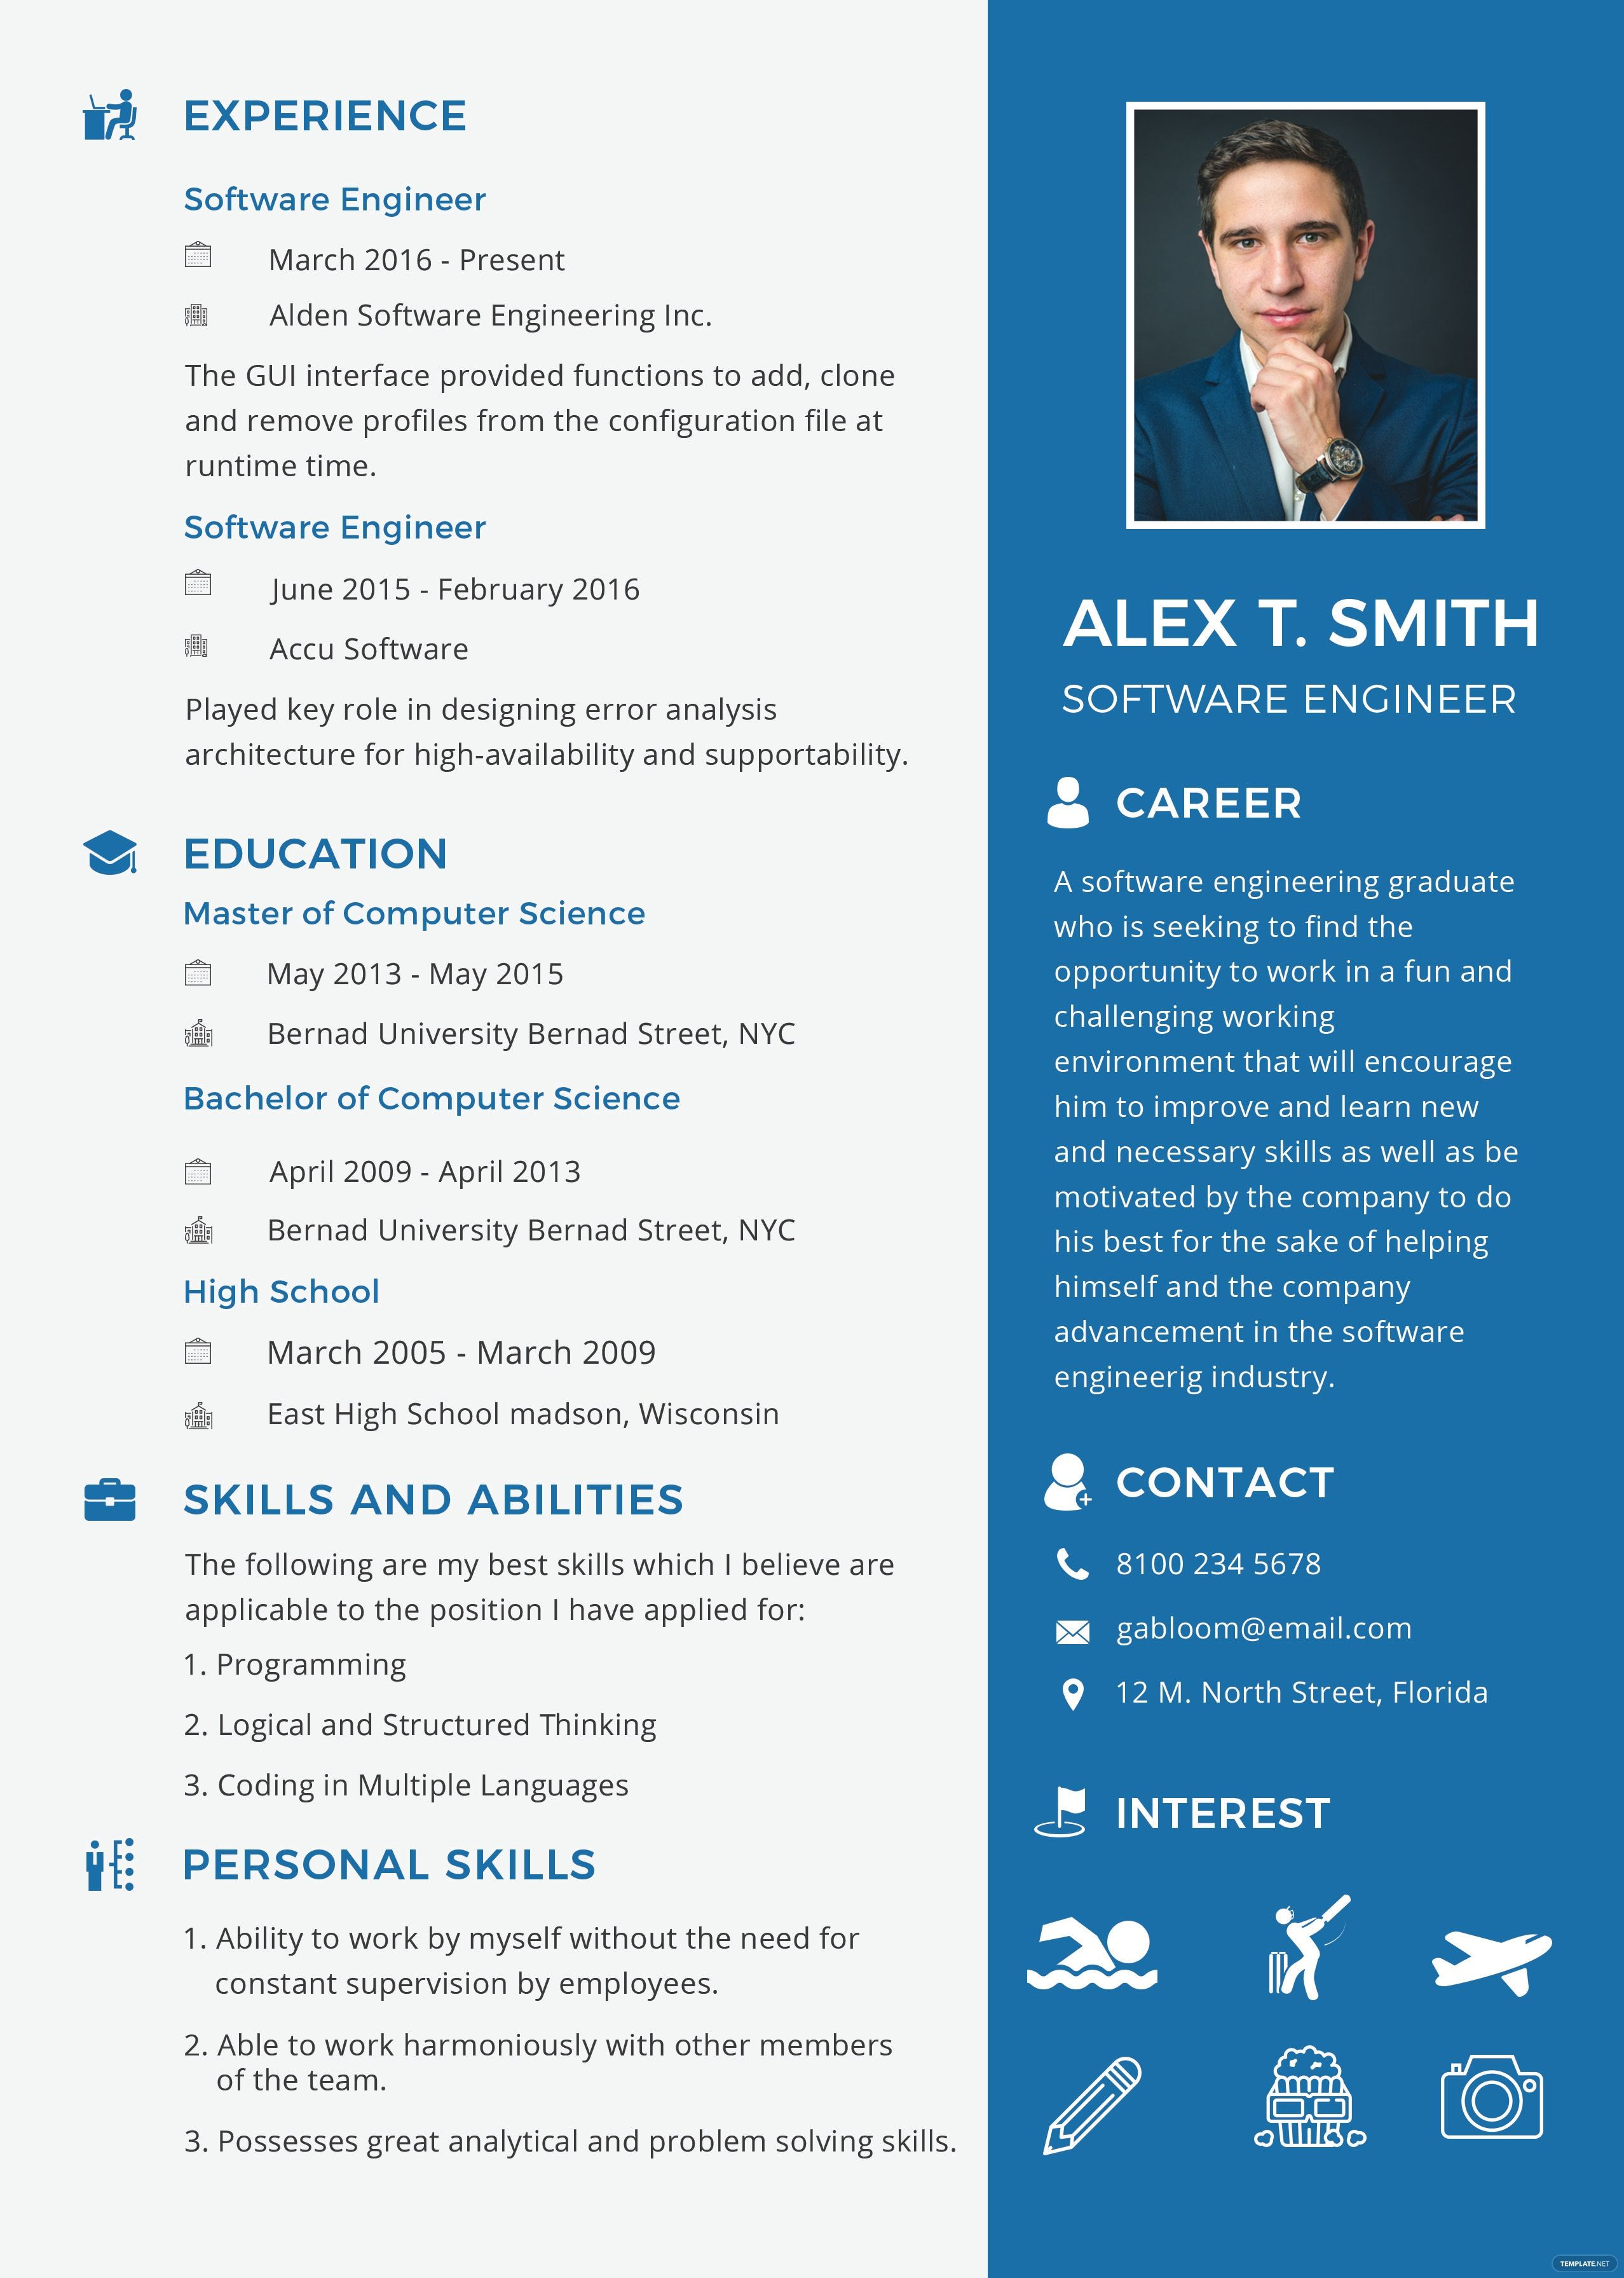 Free Resume And Cv For Software Engineer Fresher Template In Psd Ms Word Publisher Best Free Engineering Resume Templates Resume Software Engineering Resume